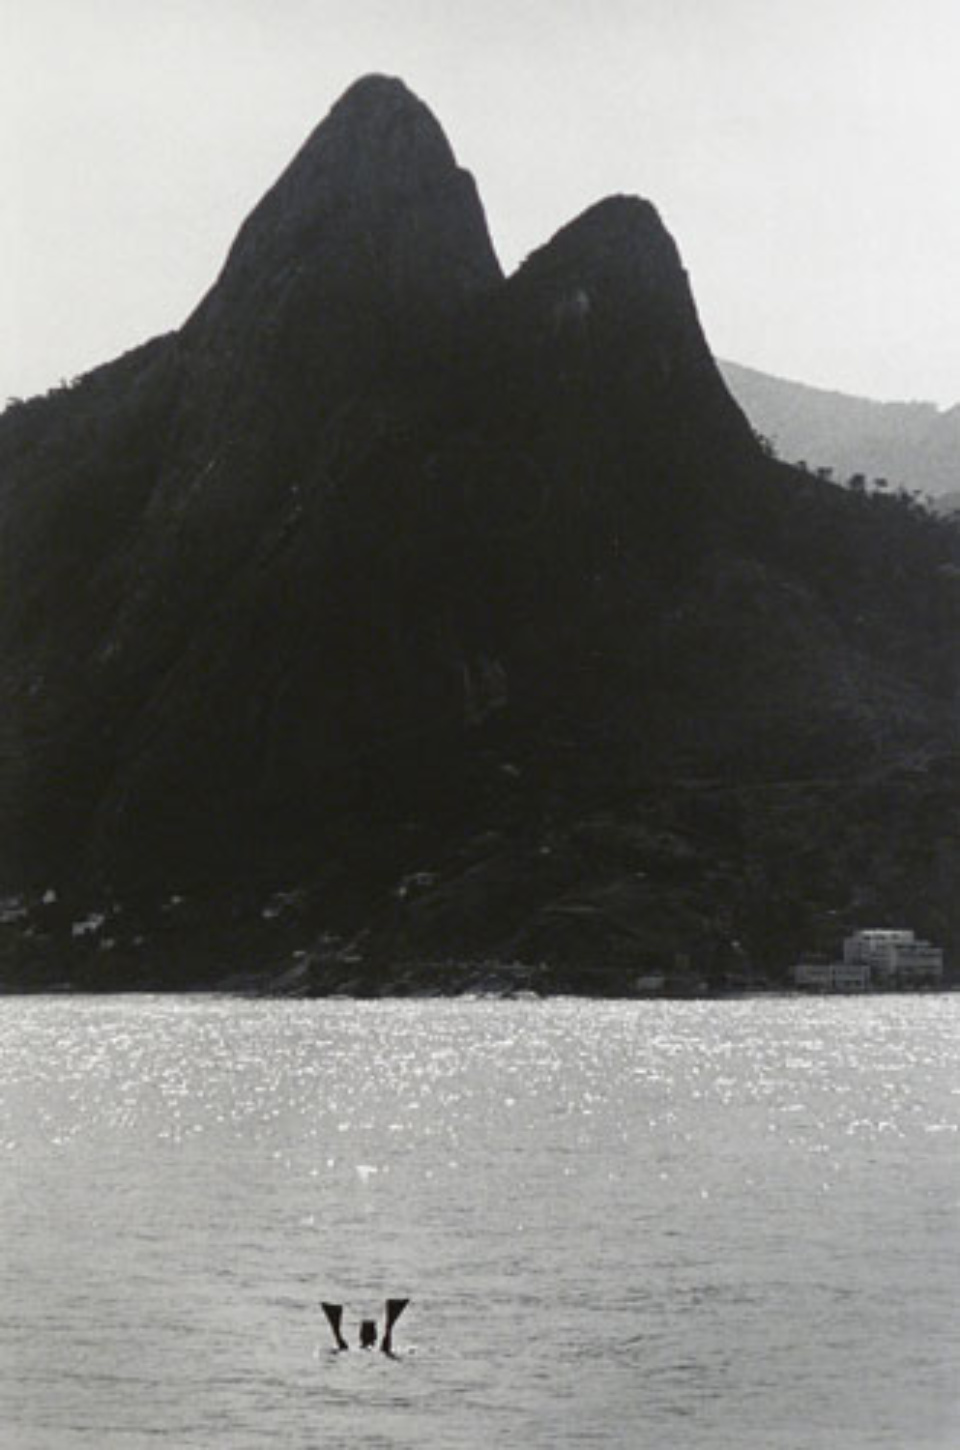 Elliott Erwitt Rio 1963 Gelatin Silver Print Signed, titled, dated Available in different formats